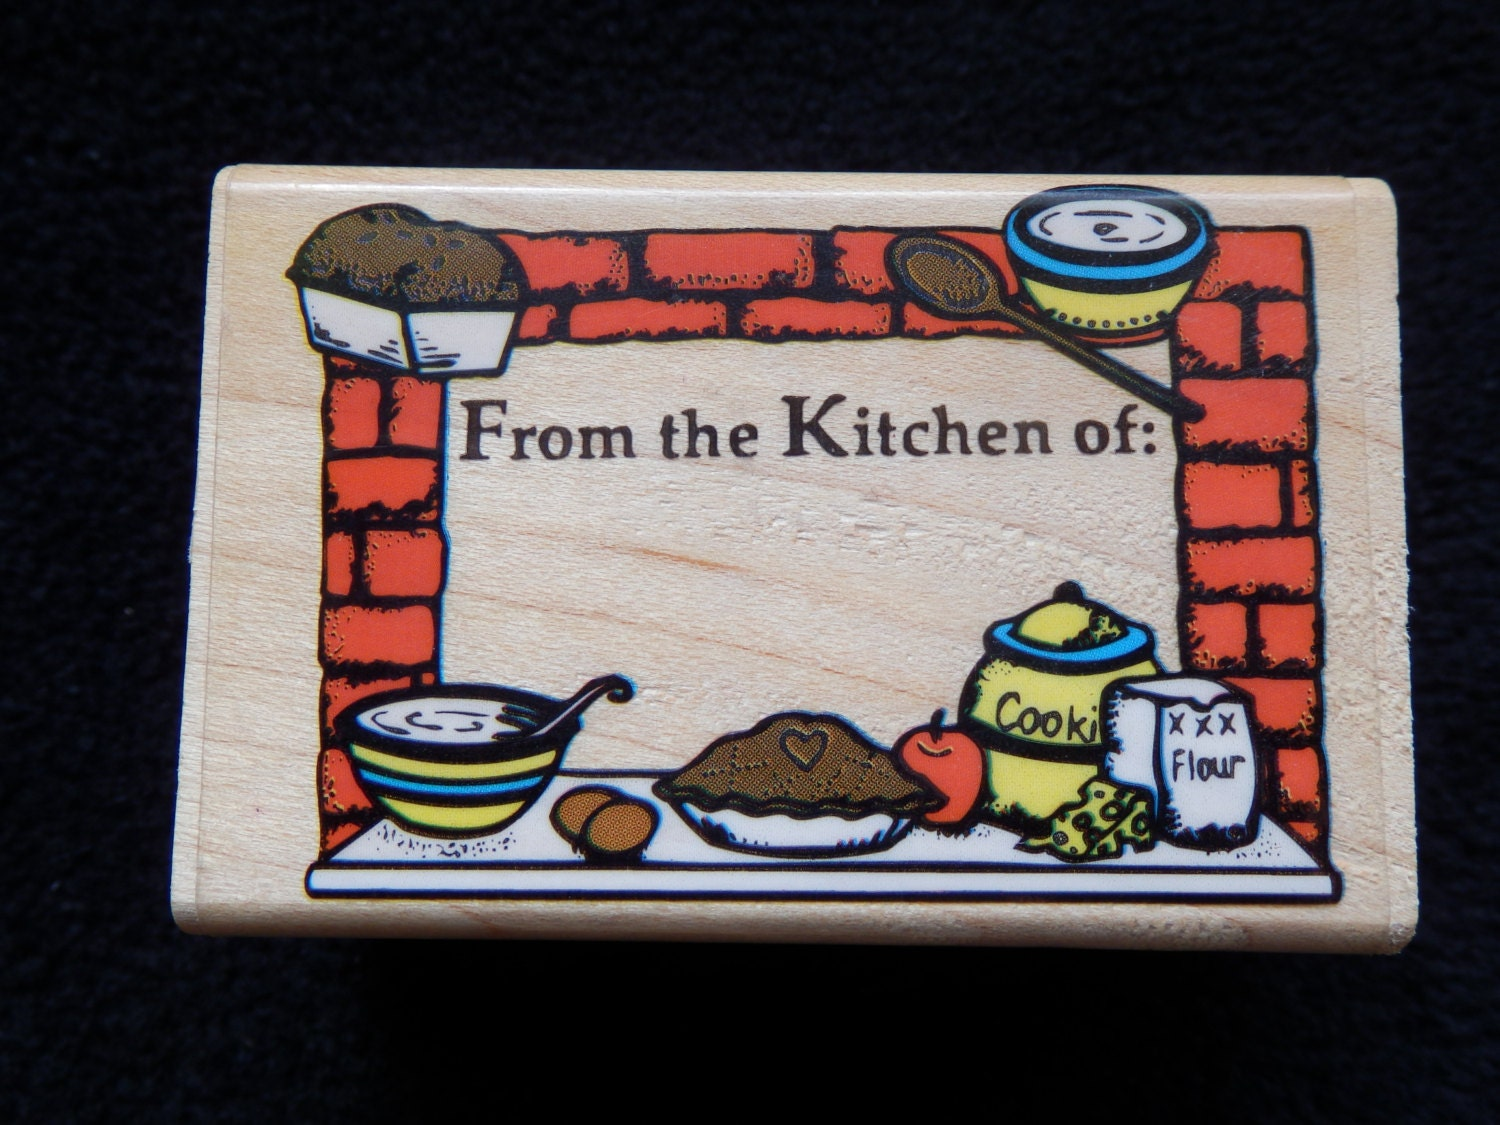 From The Kitchen Of Wm Rubber Stamp 1